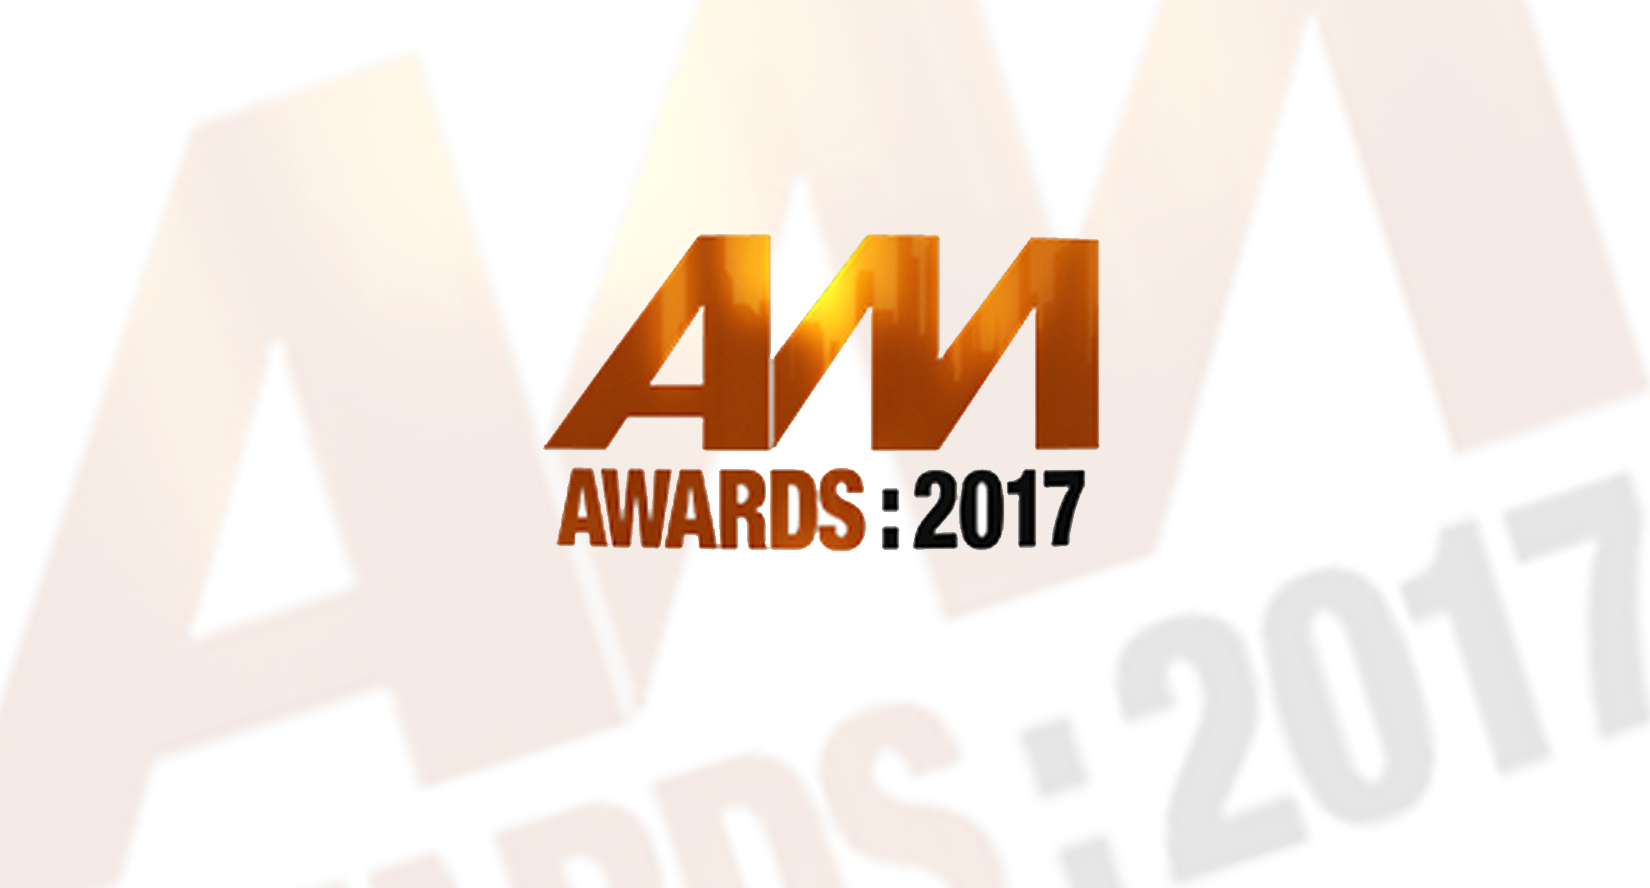 Automotive Management Awards recognises Swansway Group with Excellence in Aftersales Award.